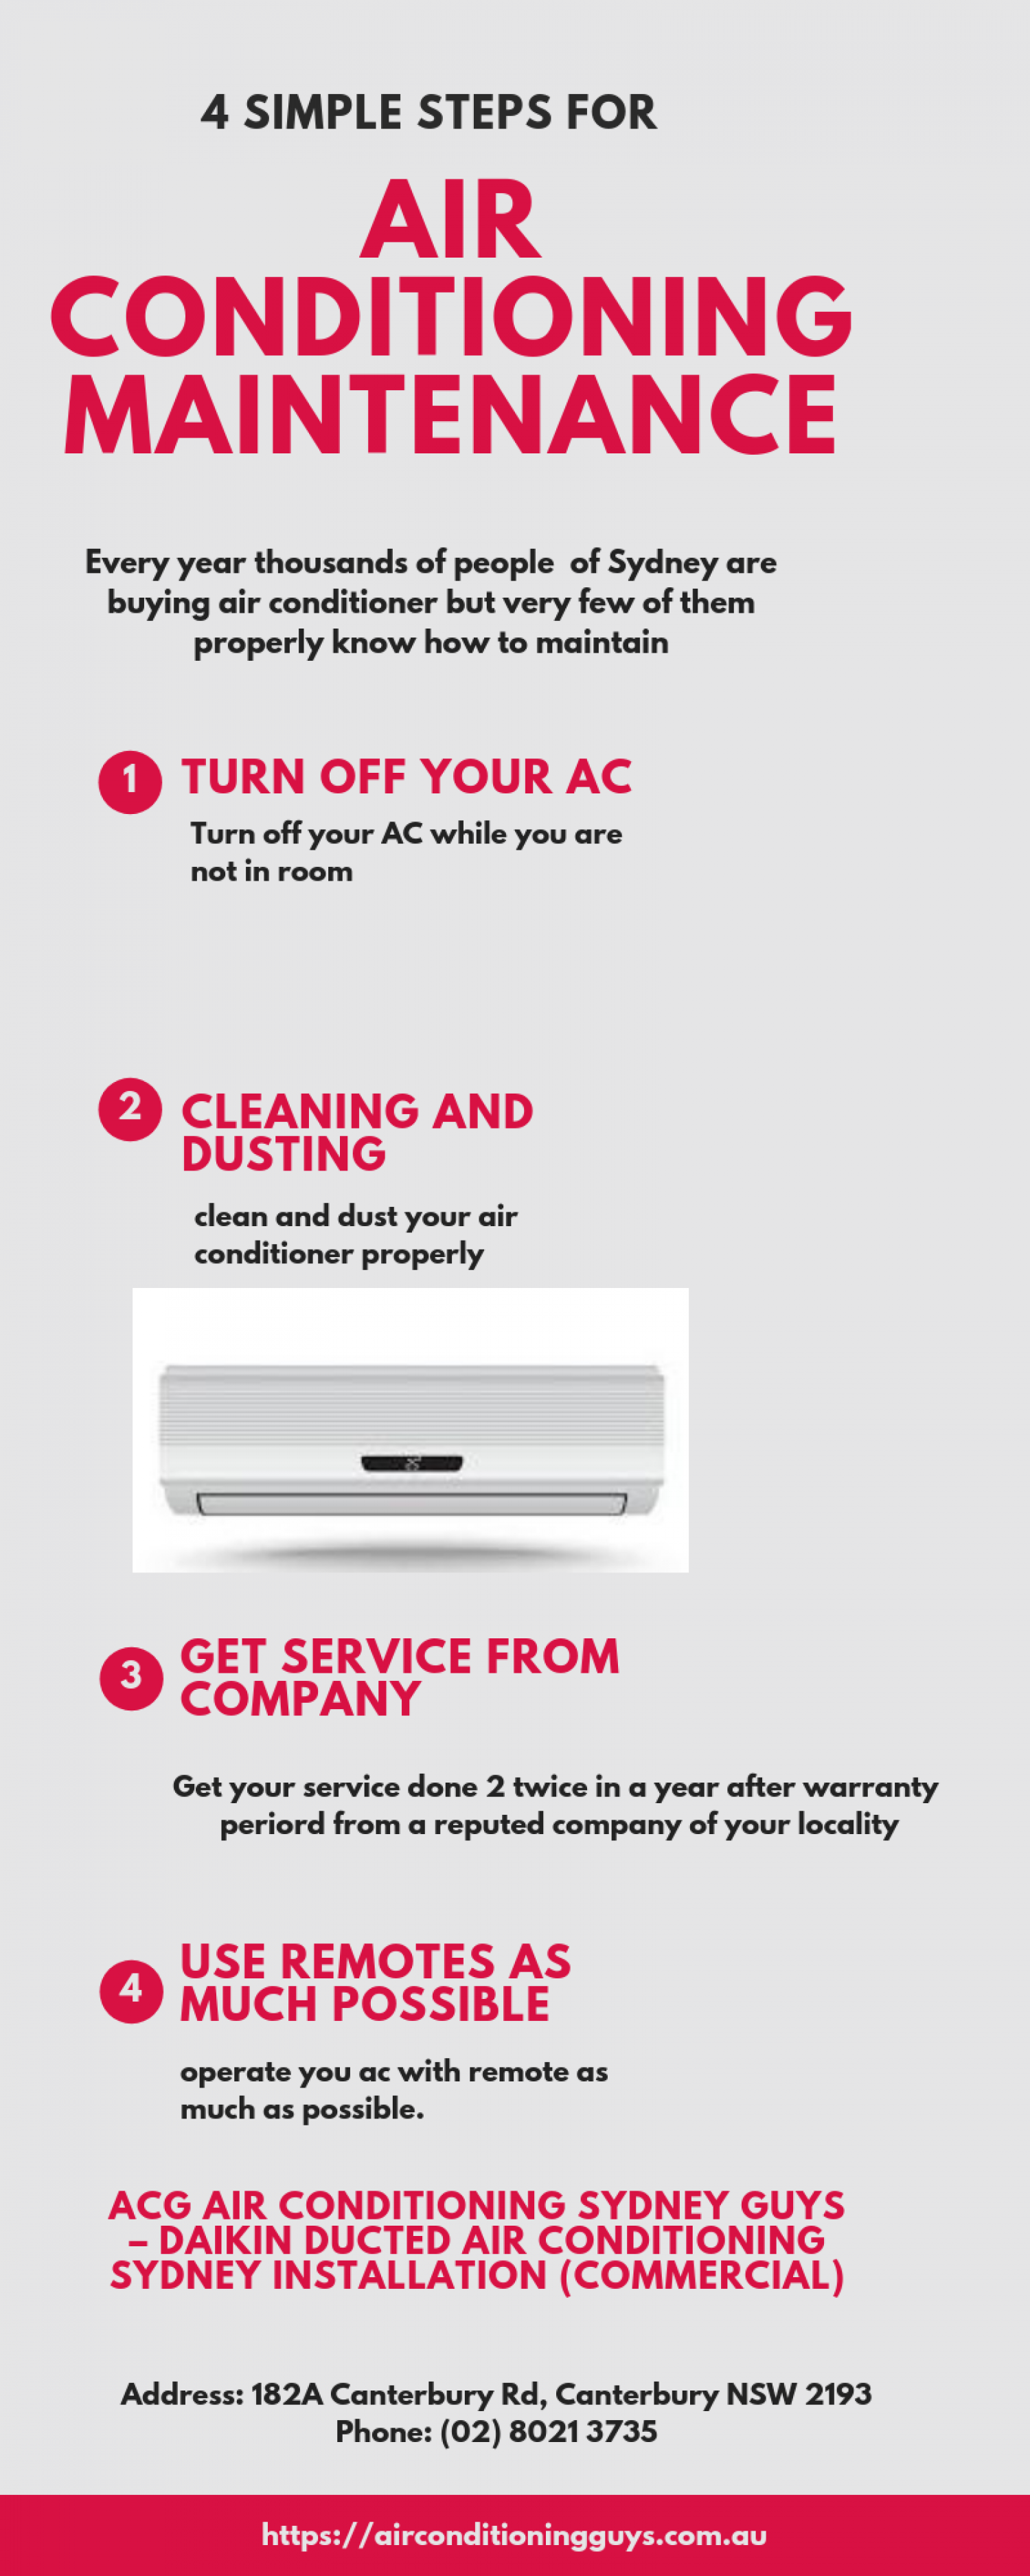 Air Conditioning Maintenance by Air Conditioning Sydney